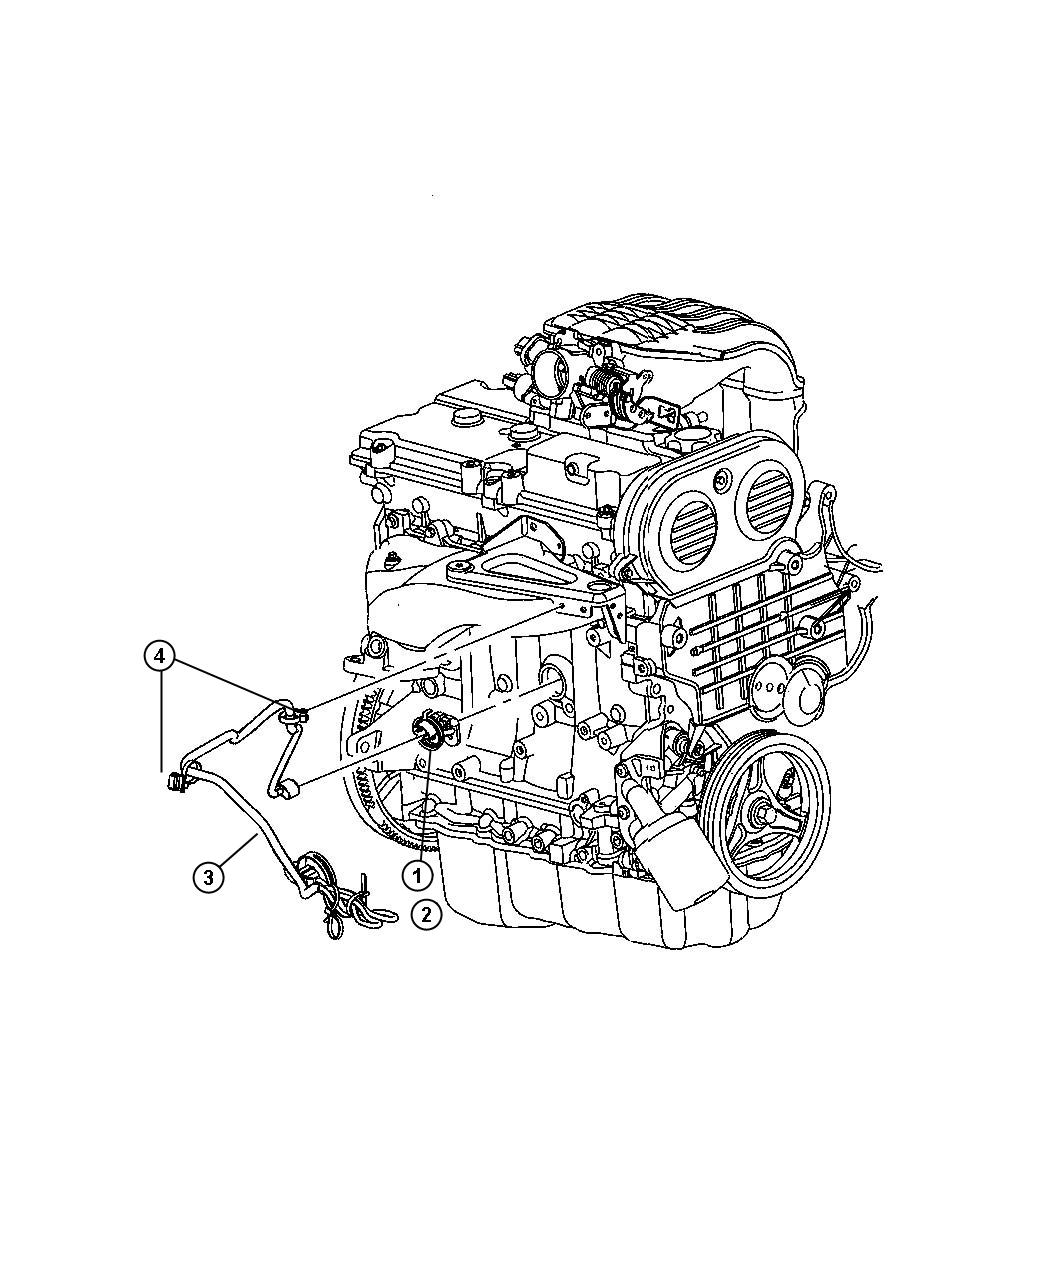 Jeep Liberty Heater Engine Block Exl